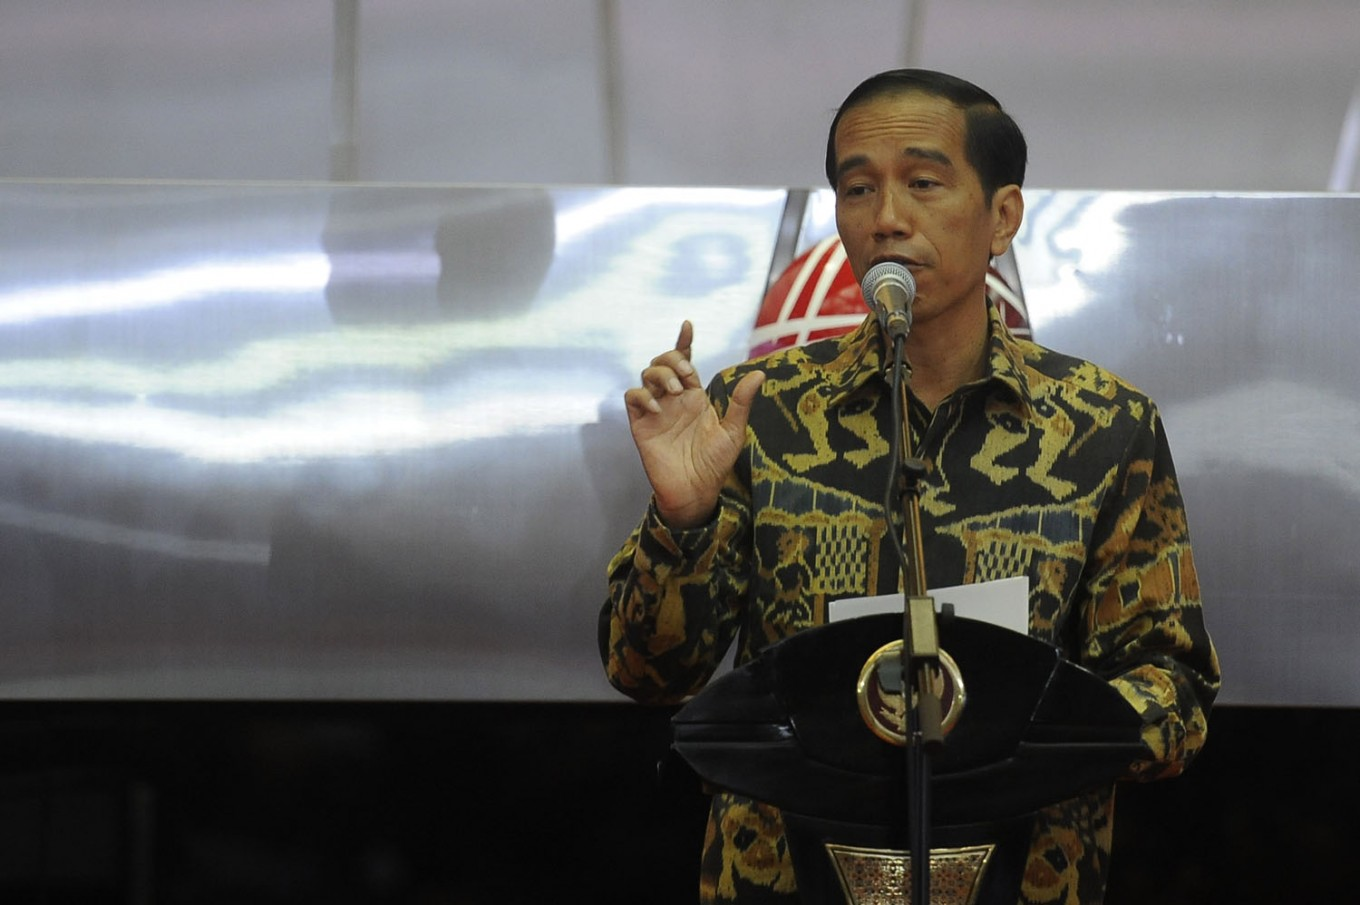 Jokowi's growth dream fades as Indonesia seeks stability instead